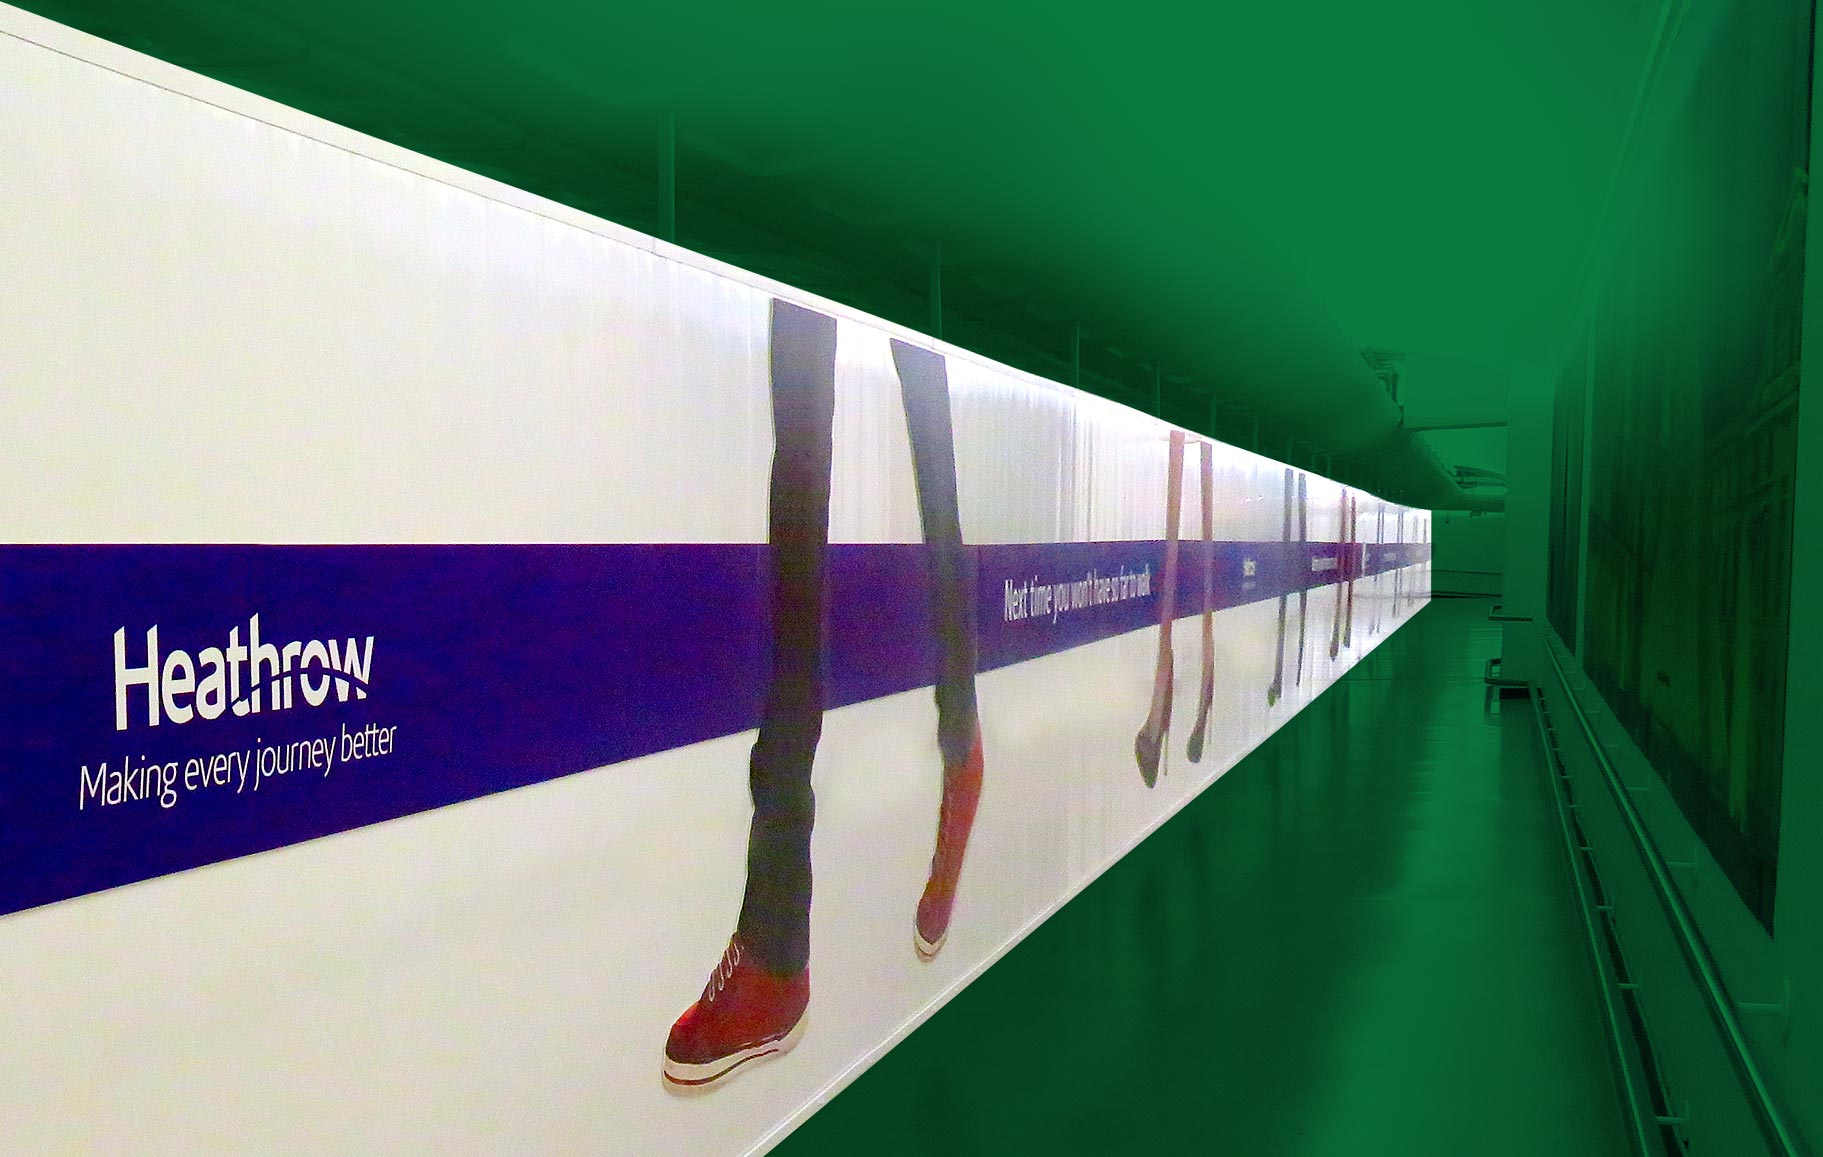 Internal hoarding installation for Heathrow Airport